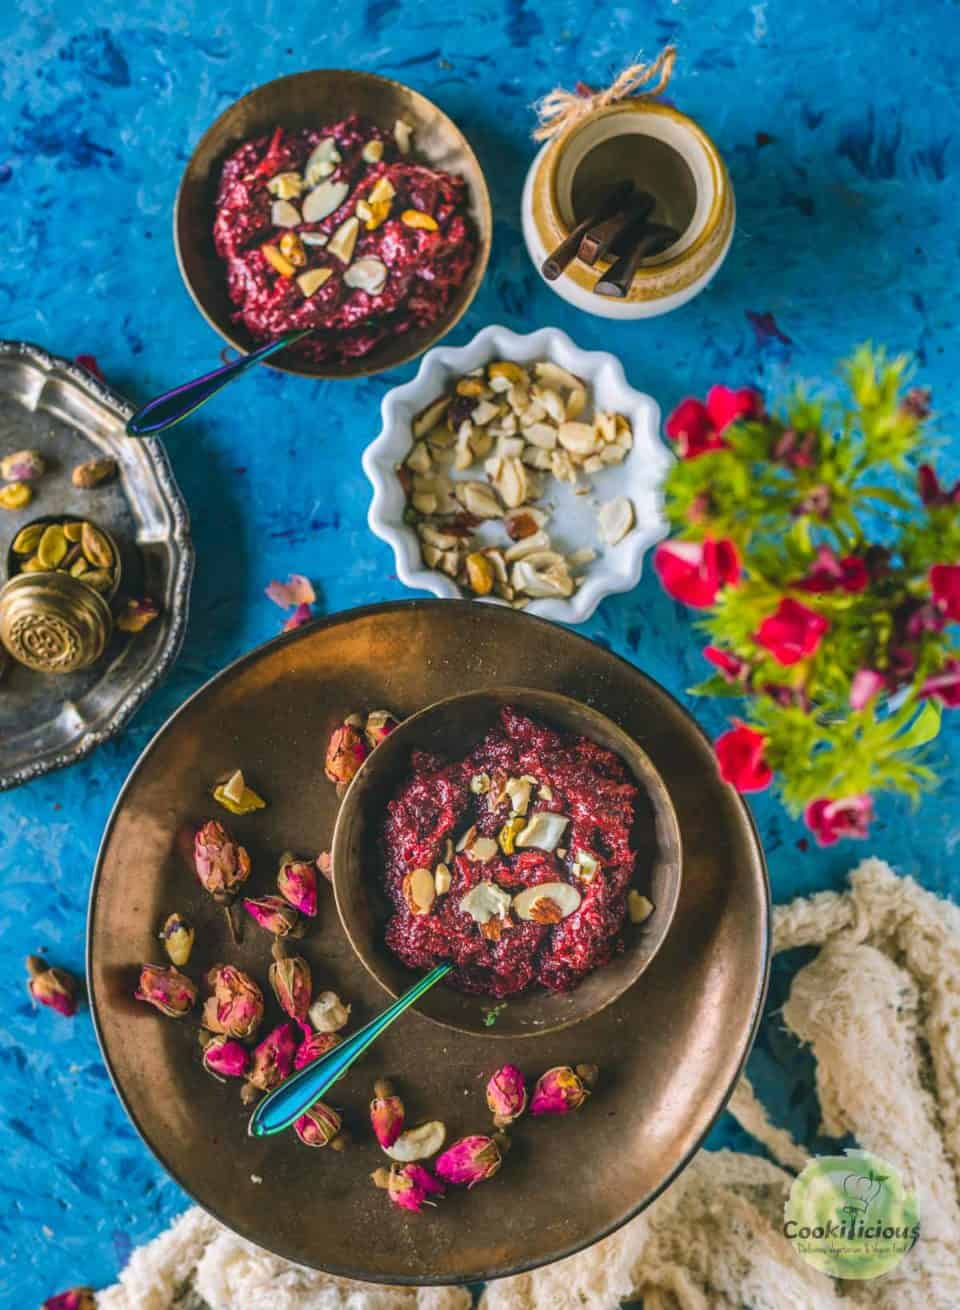 one bowl of Beetroot Halwa served in a round plate with rose buds around it while the other bowl is next to it